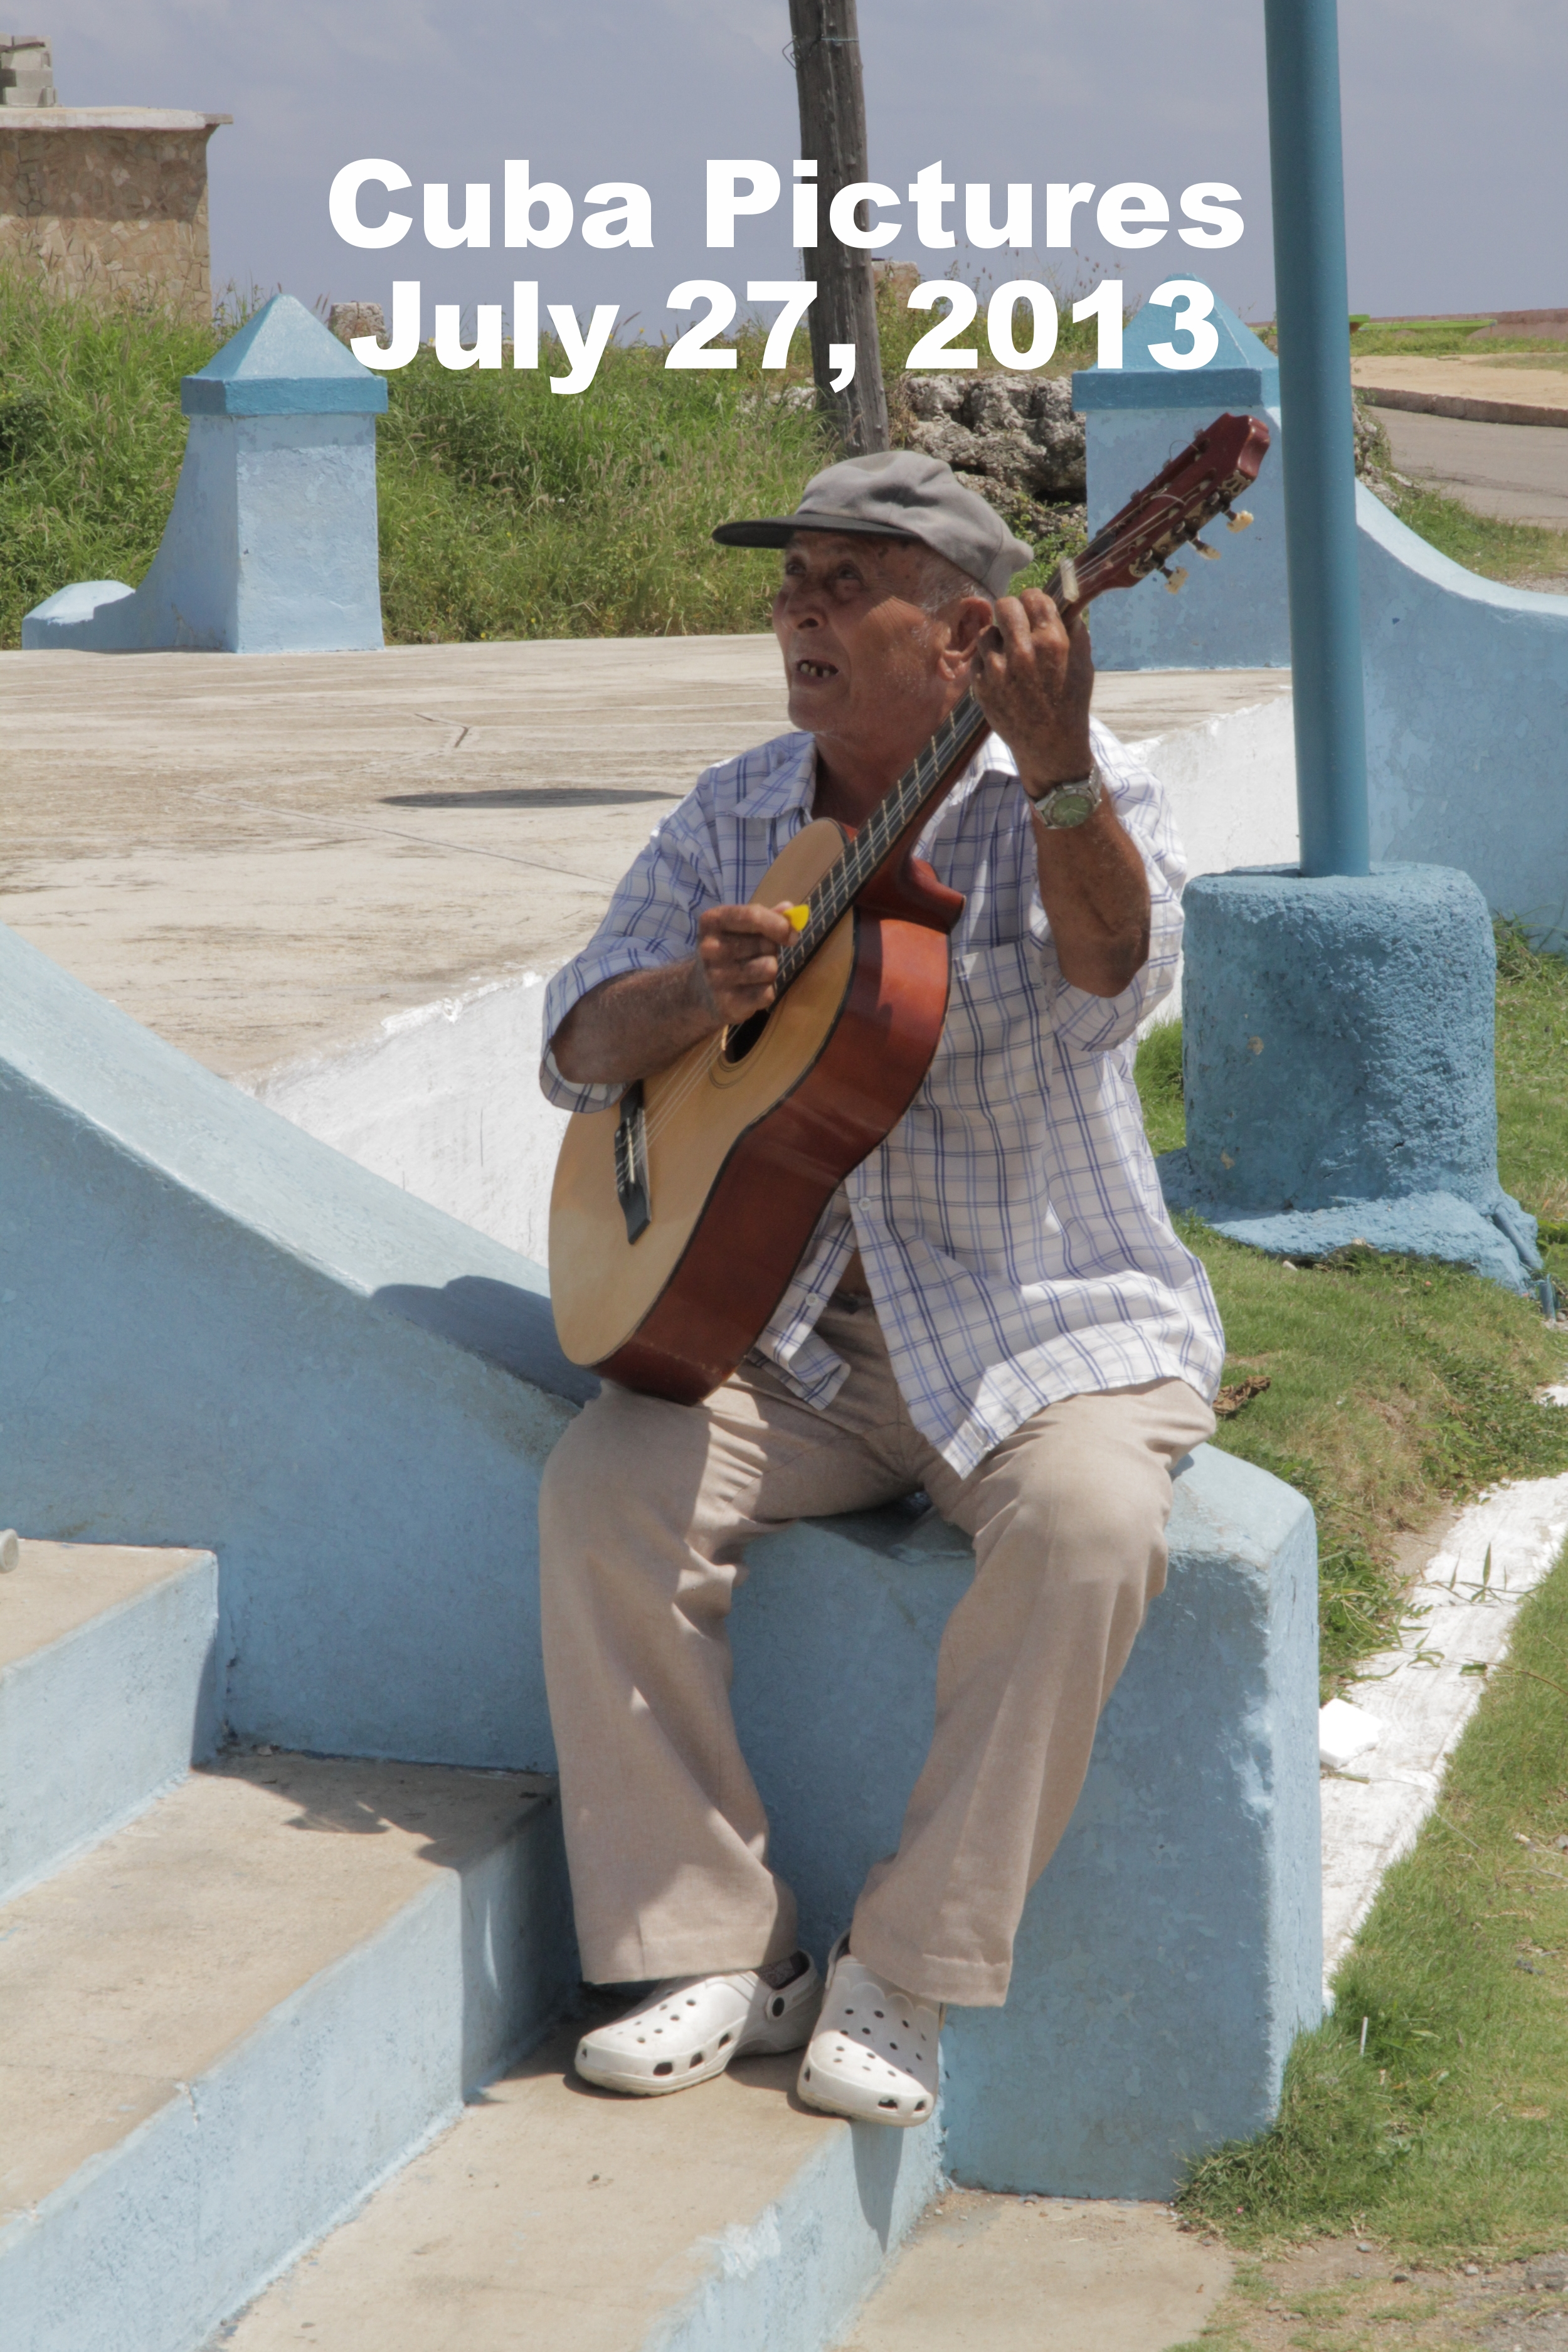 Cuba Pictures - Day 3